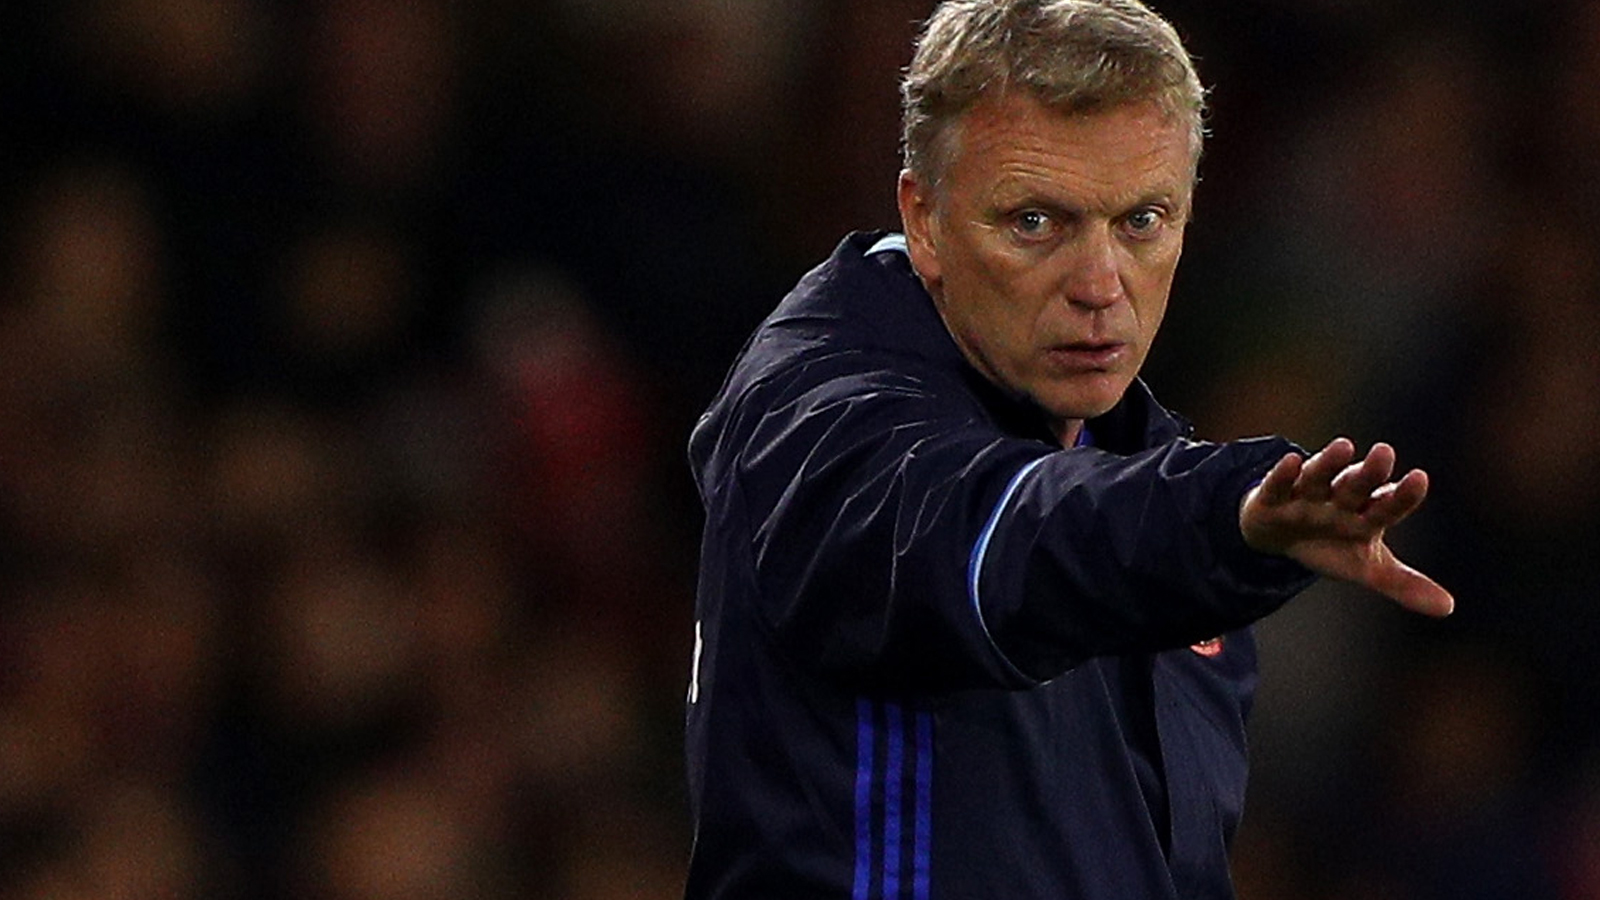 David Moyes fined by FA for remark made to female reporter